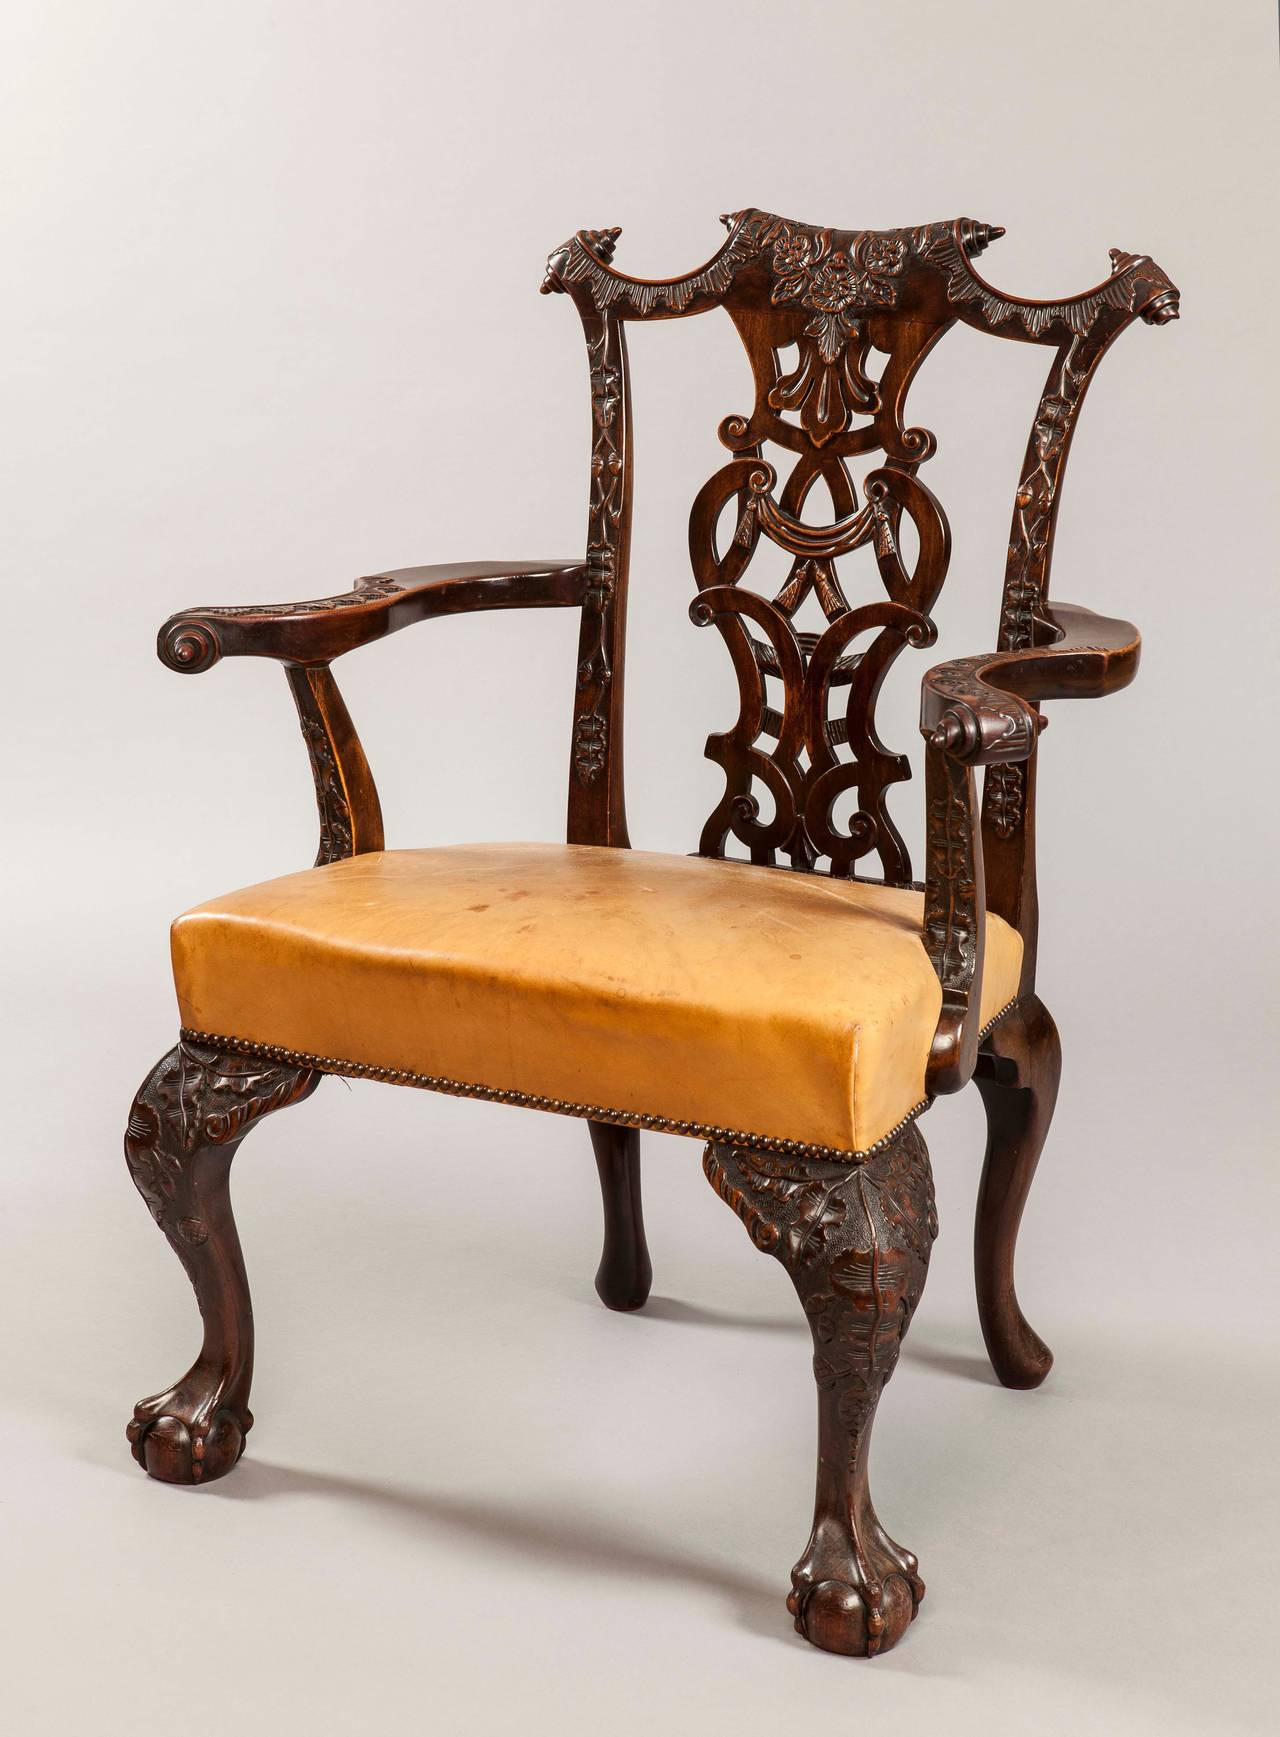 Comprising 12 chairs, and consisting of two Carver armchairs, and ten side chairs; constructed in mahogany, which has been excellently and comprehensively carved; rising from cabriole front legs, with ball and claw feet, having foliate carved knees